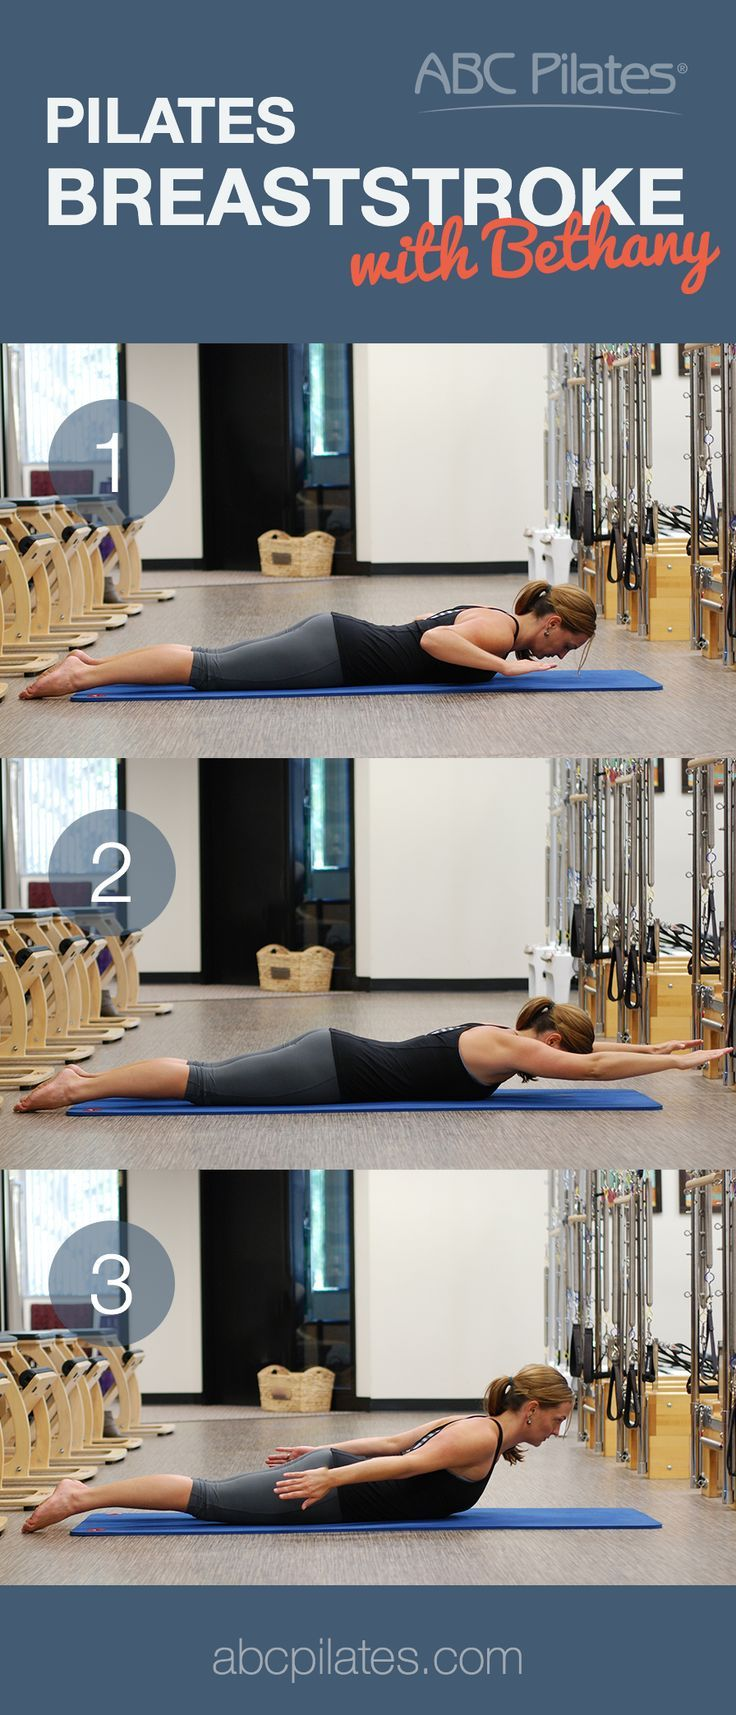 The Pilates Breaststroke is a great exercise for correcting poor posture and the pain it comes with! ABC Pilates instructor Bethany shows you how. #Pilates #exercise #pilatesexercise #workout #fitness #yoga #ABCPilates #josephpilates #healthy